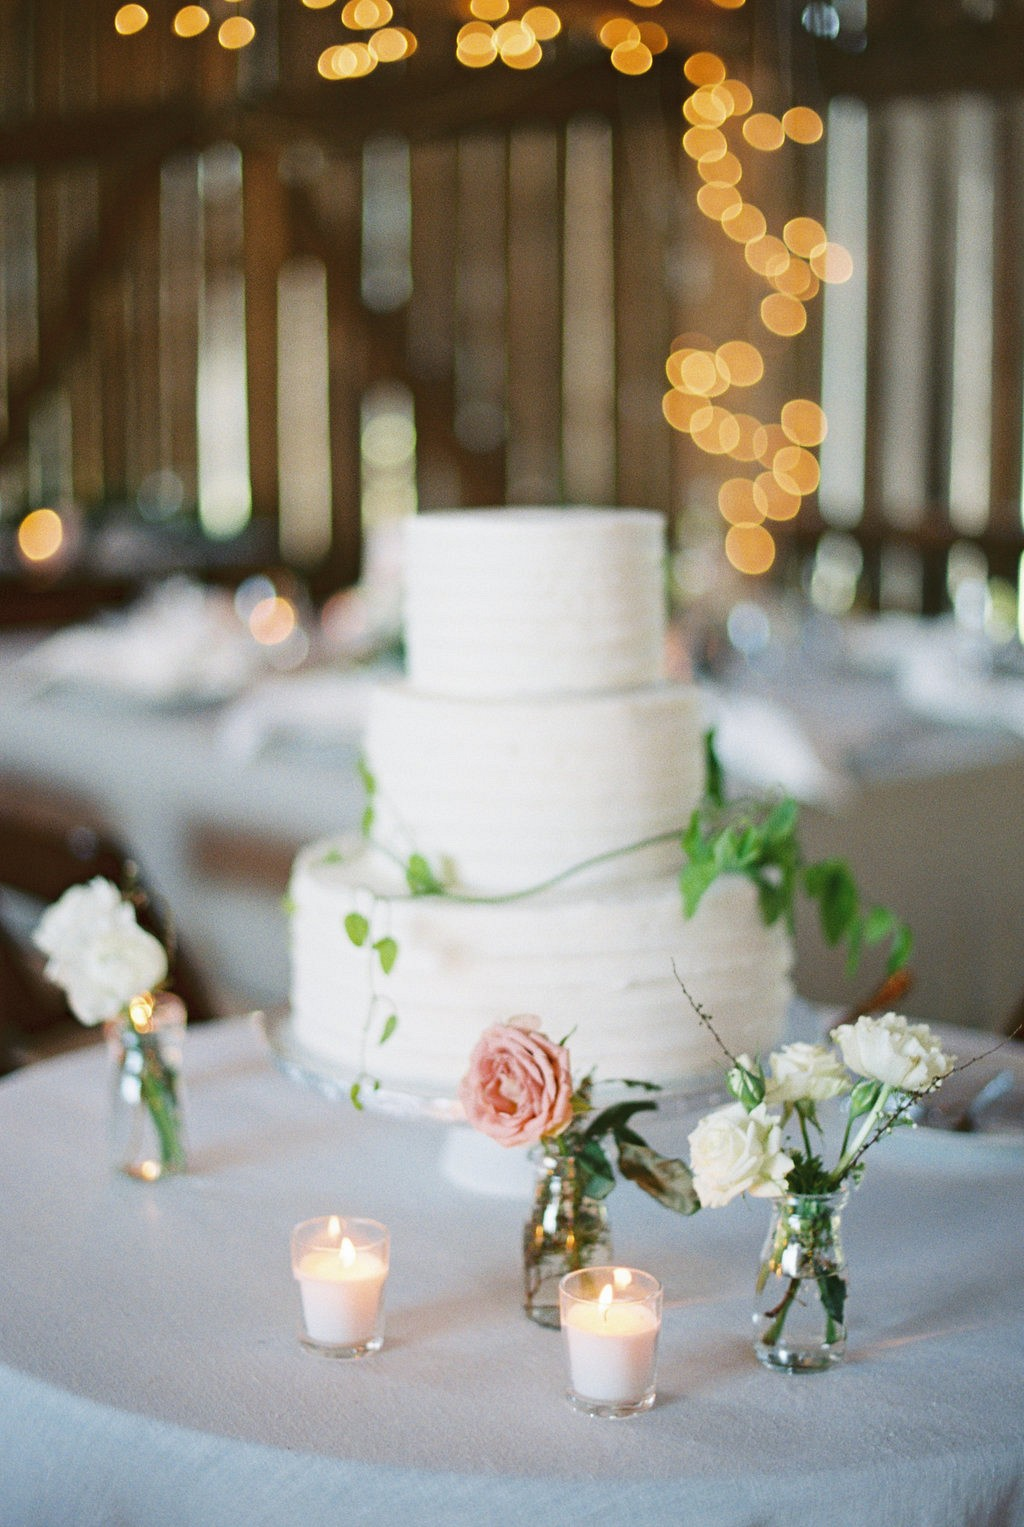 Wedding cake with simple florals | Heartfelt and Nostalgic Indiana Barn Wedding by Renee Lemaire | Wedding Sparrow fine art wedding blog